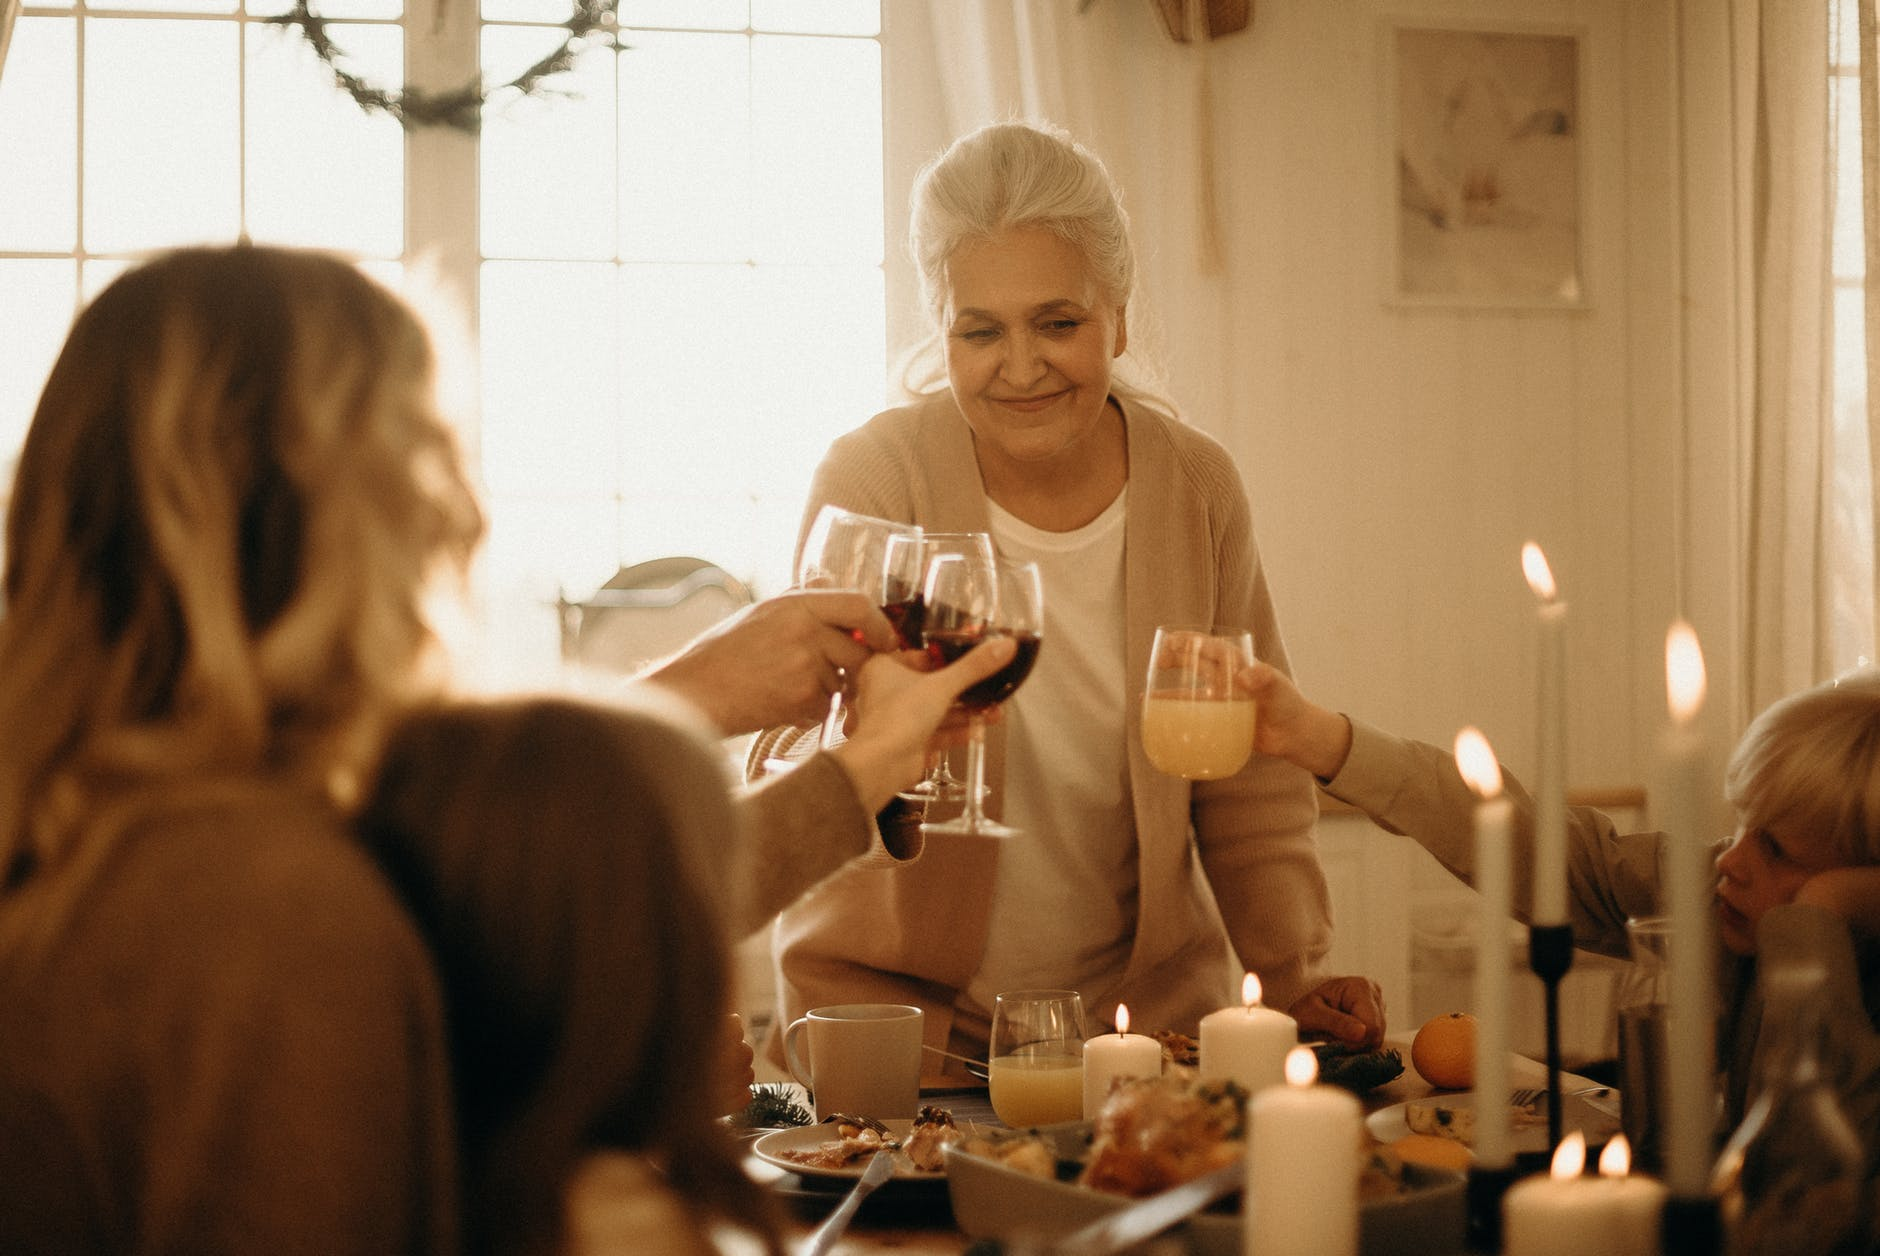 woman on gray cardigan standing near table doing cheers